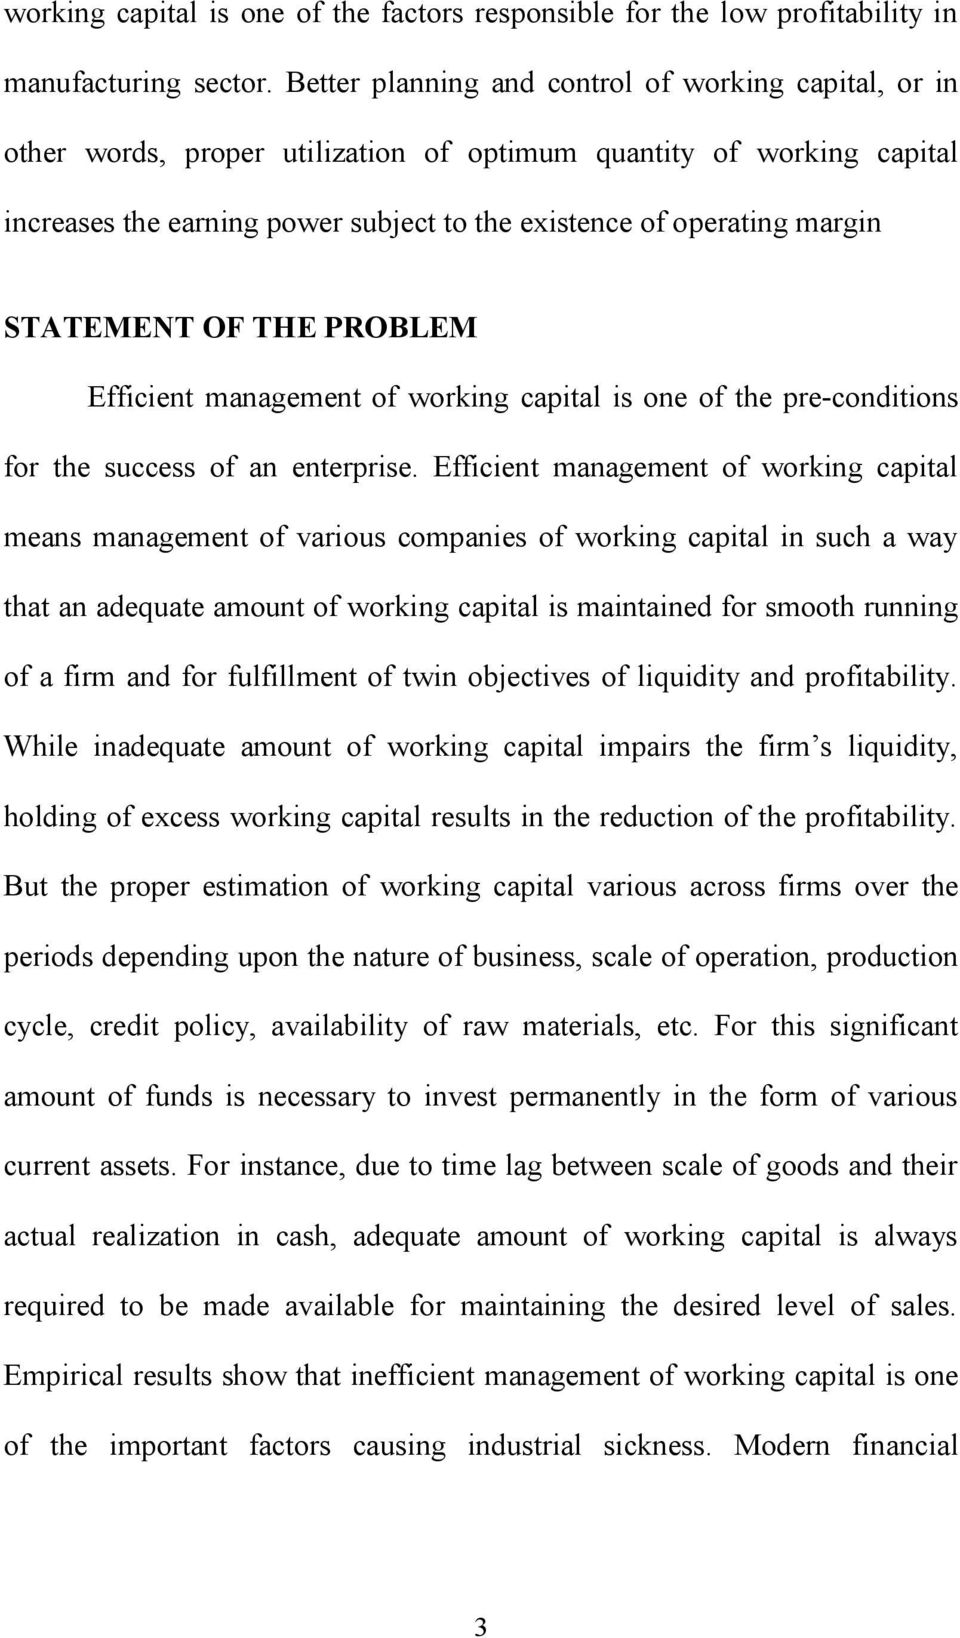 STATEMENT OF THE PROBLEM Efficient management of working capital is one of the pre-conditions for the success of an enterprise.